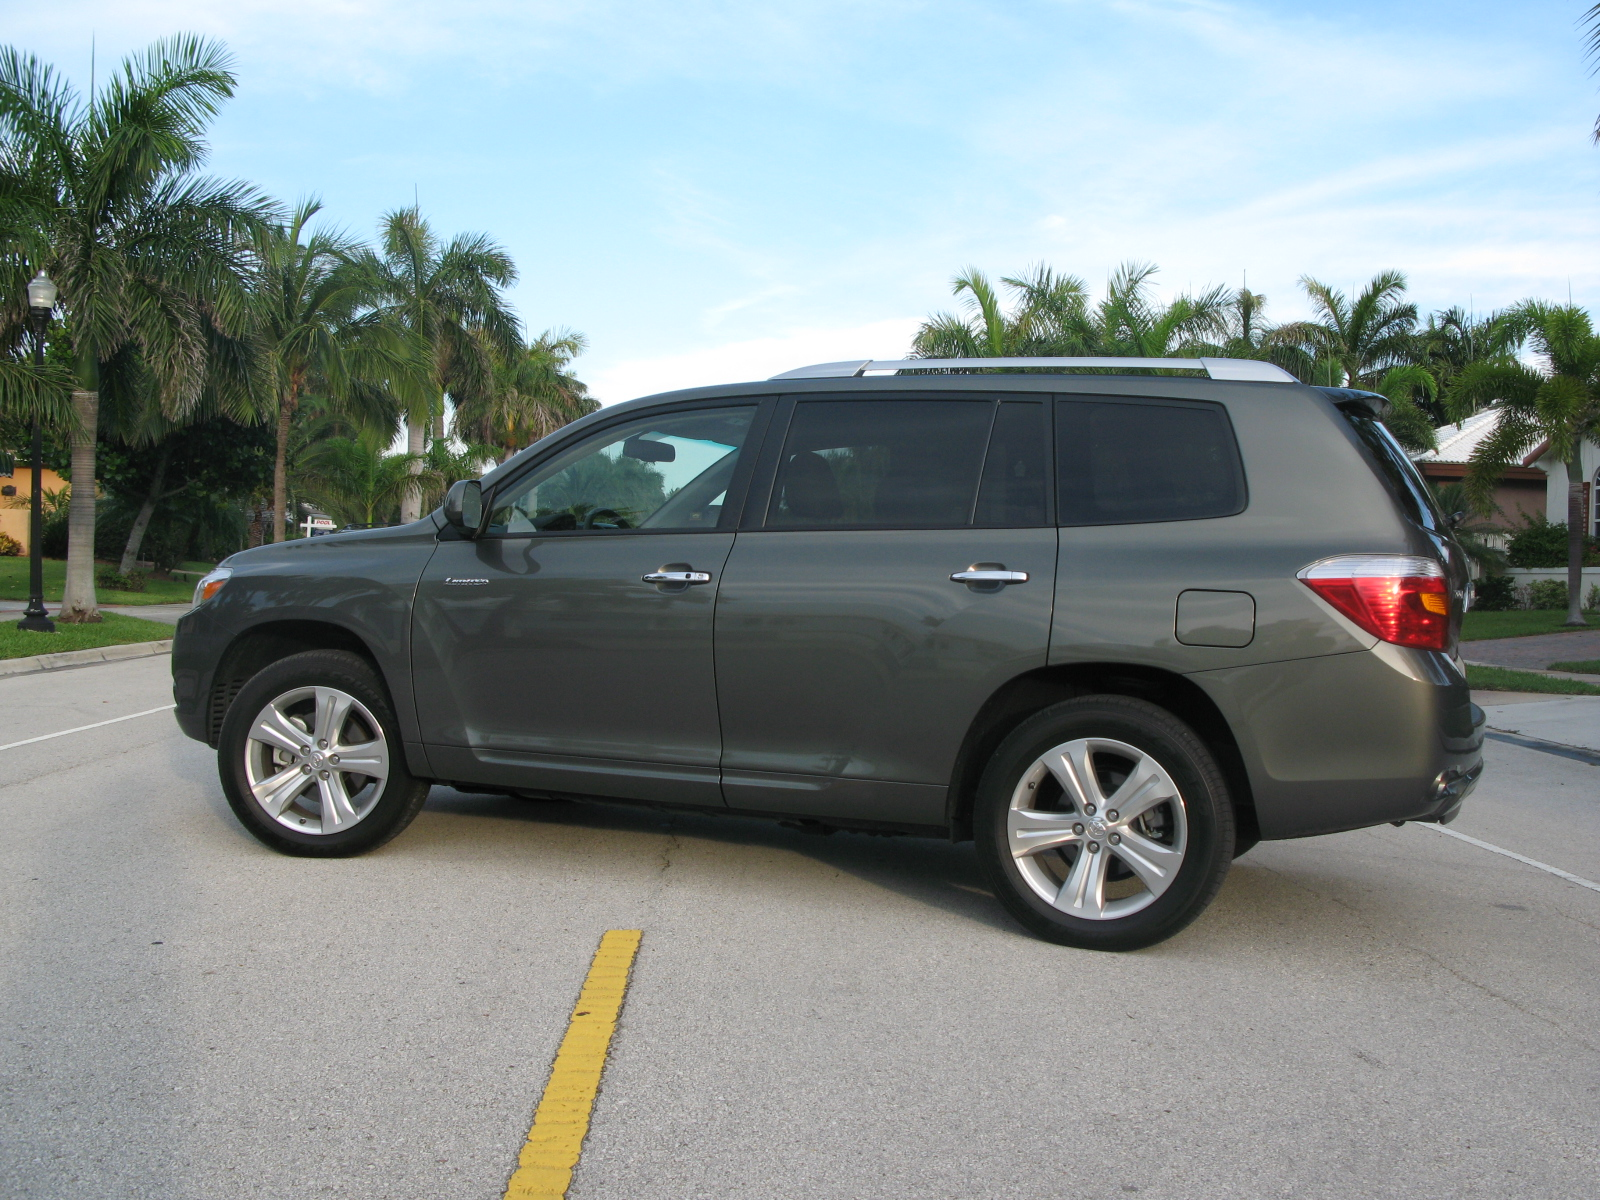 2008 Toyota Highlander Review - Top Speed